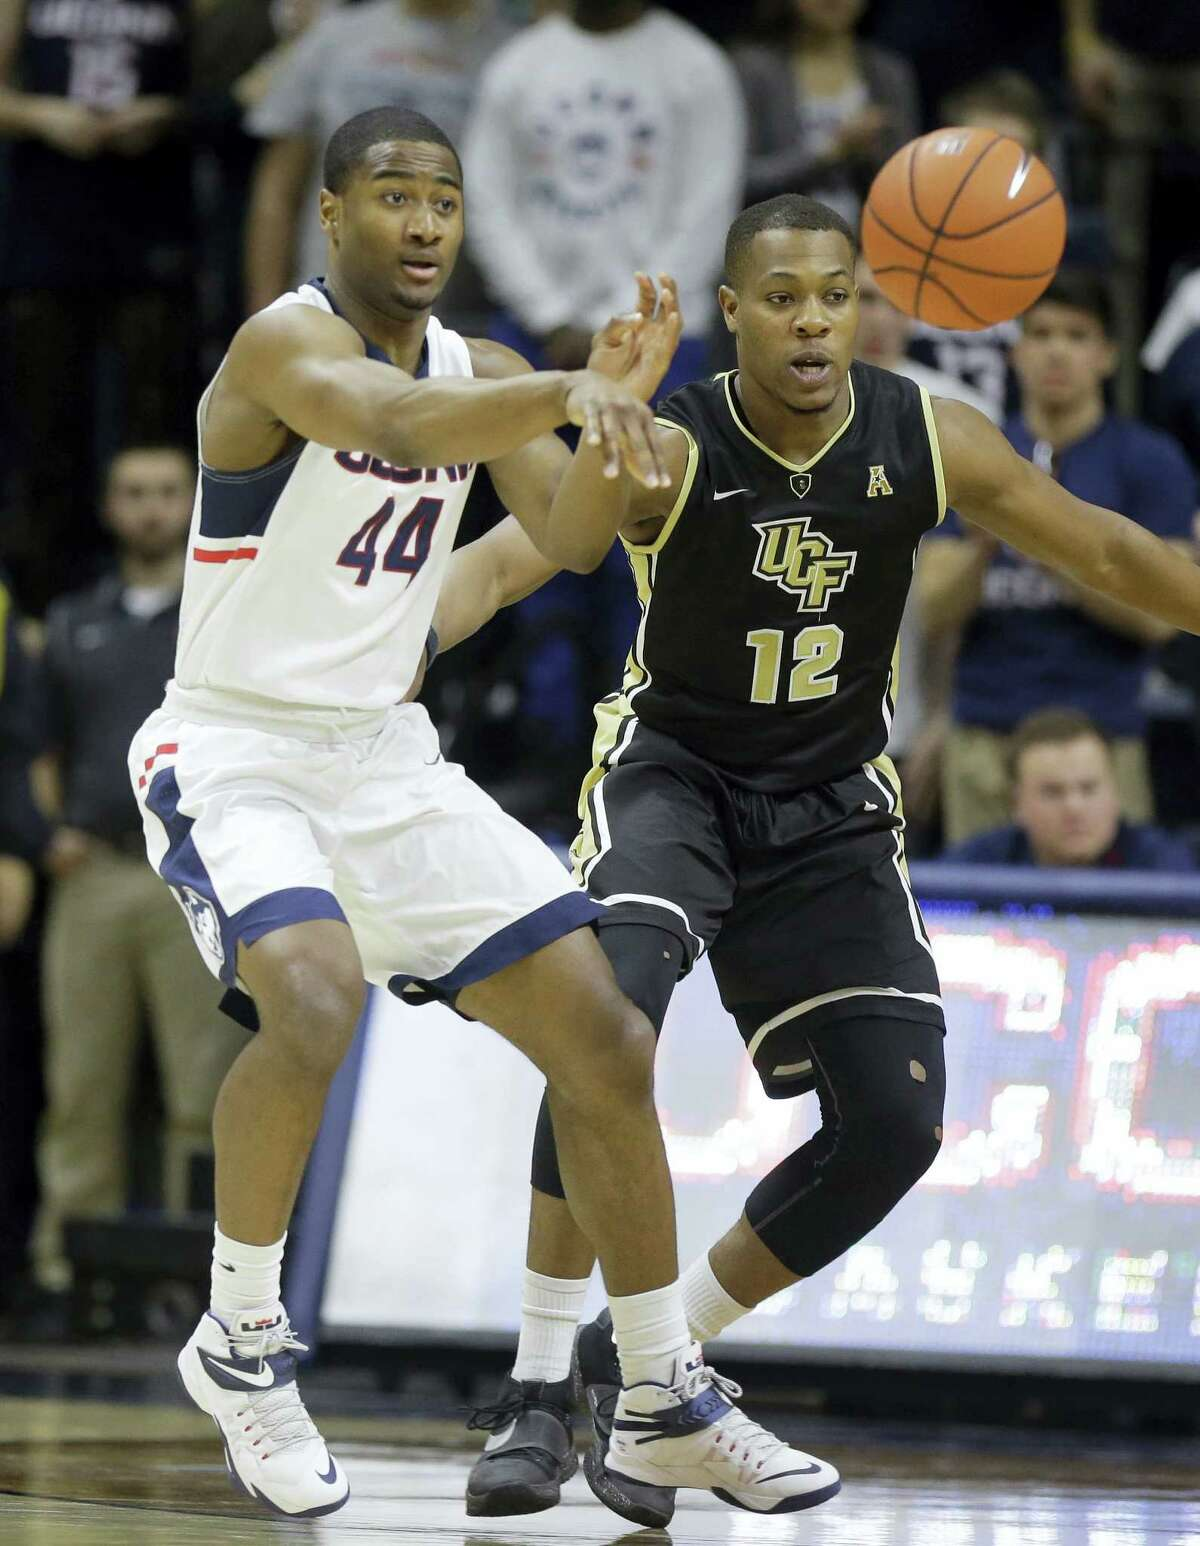 Connecticut's Rodney Purvis (44) passes the ball as Central Florida's Matt Williams (12) looks on in the first half of an NCAA college basketball game Sunday, March 6, 2016, in Storrs, Conn. (AP Photo/Steven Senne)